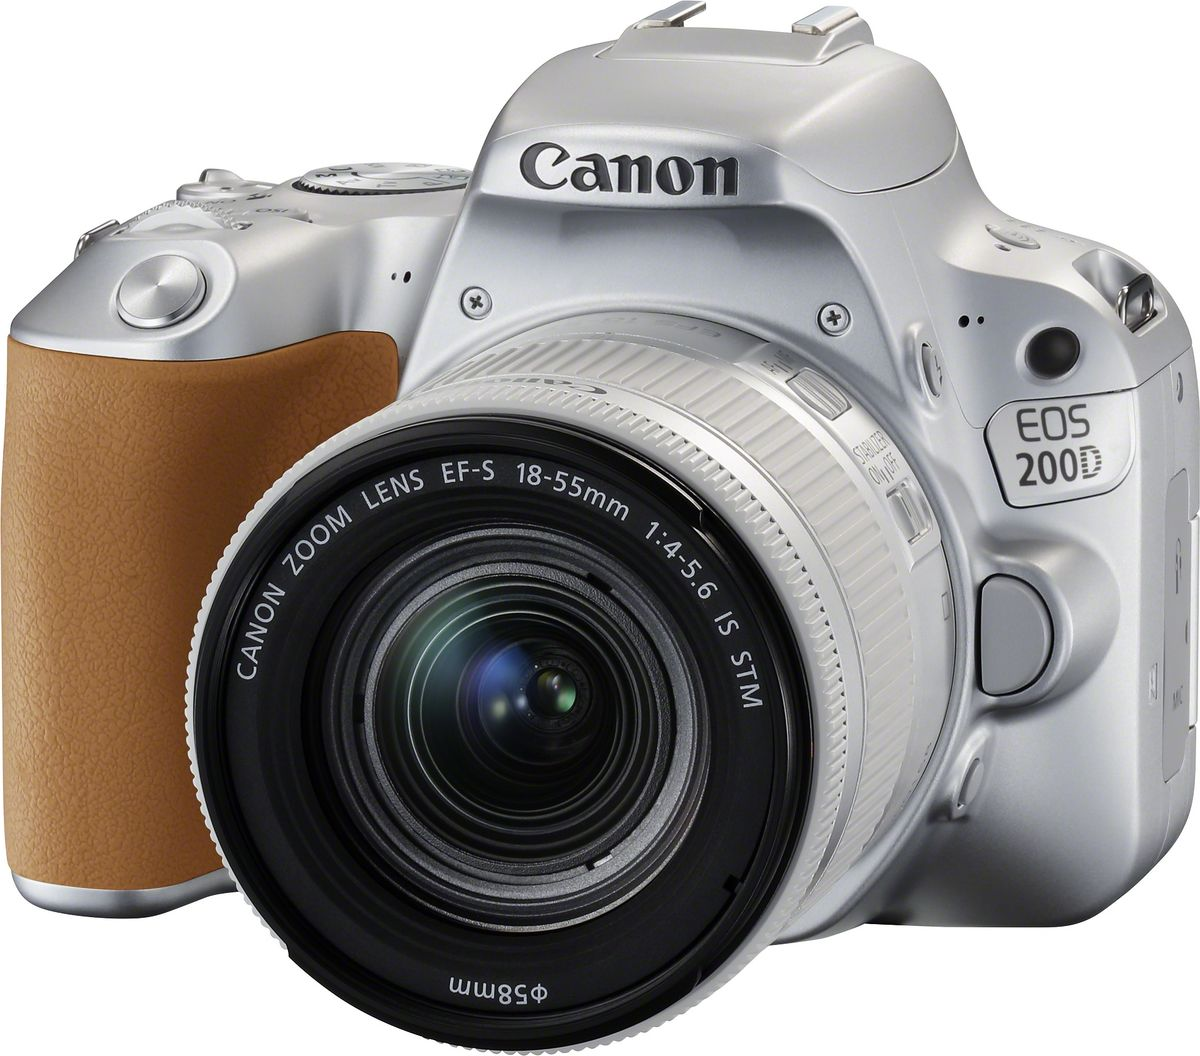 Canon EOS 200D Kit 18-55 IS STM, Silver цифровая зеркальная фотокамера фотоаппарат canon eos 200d body silver